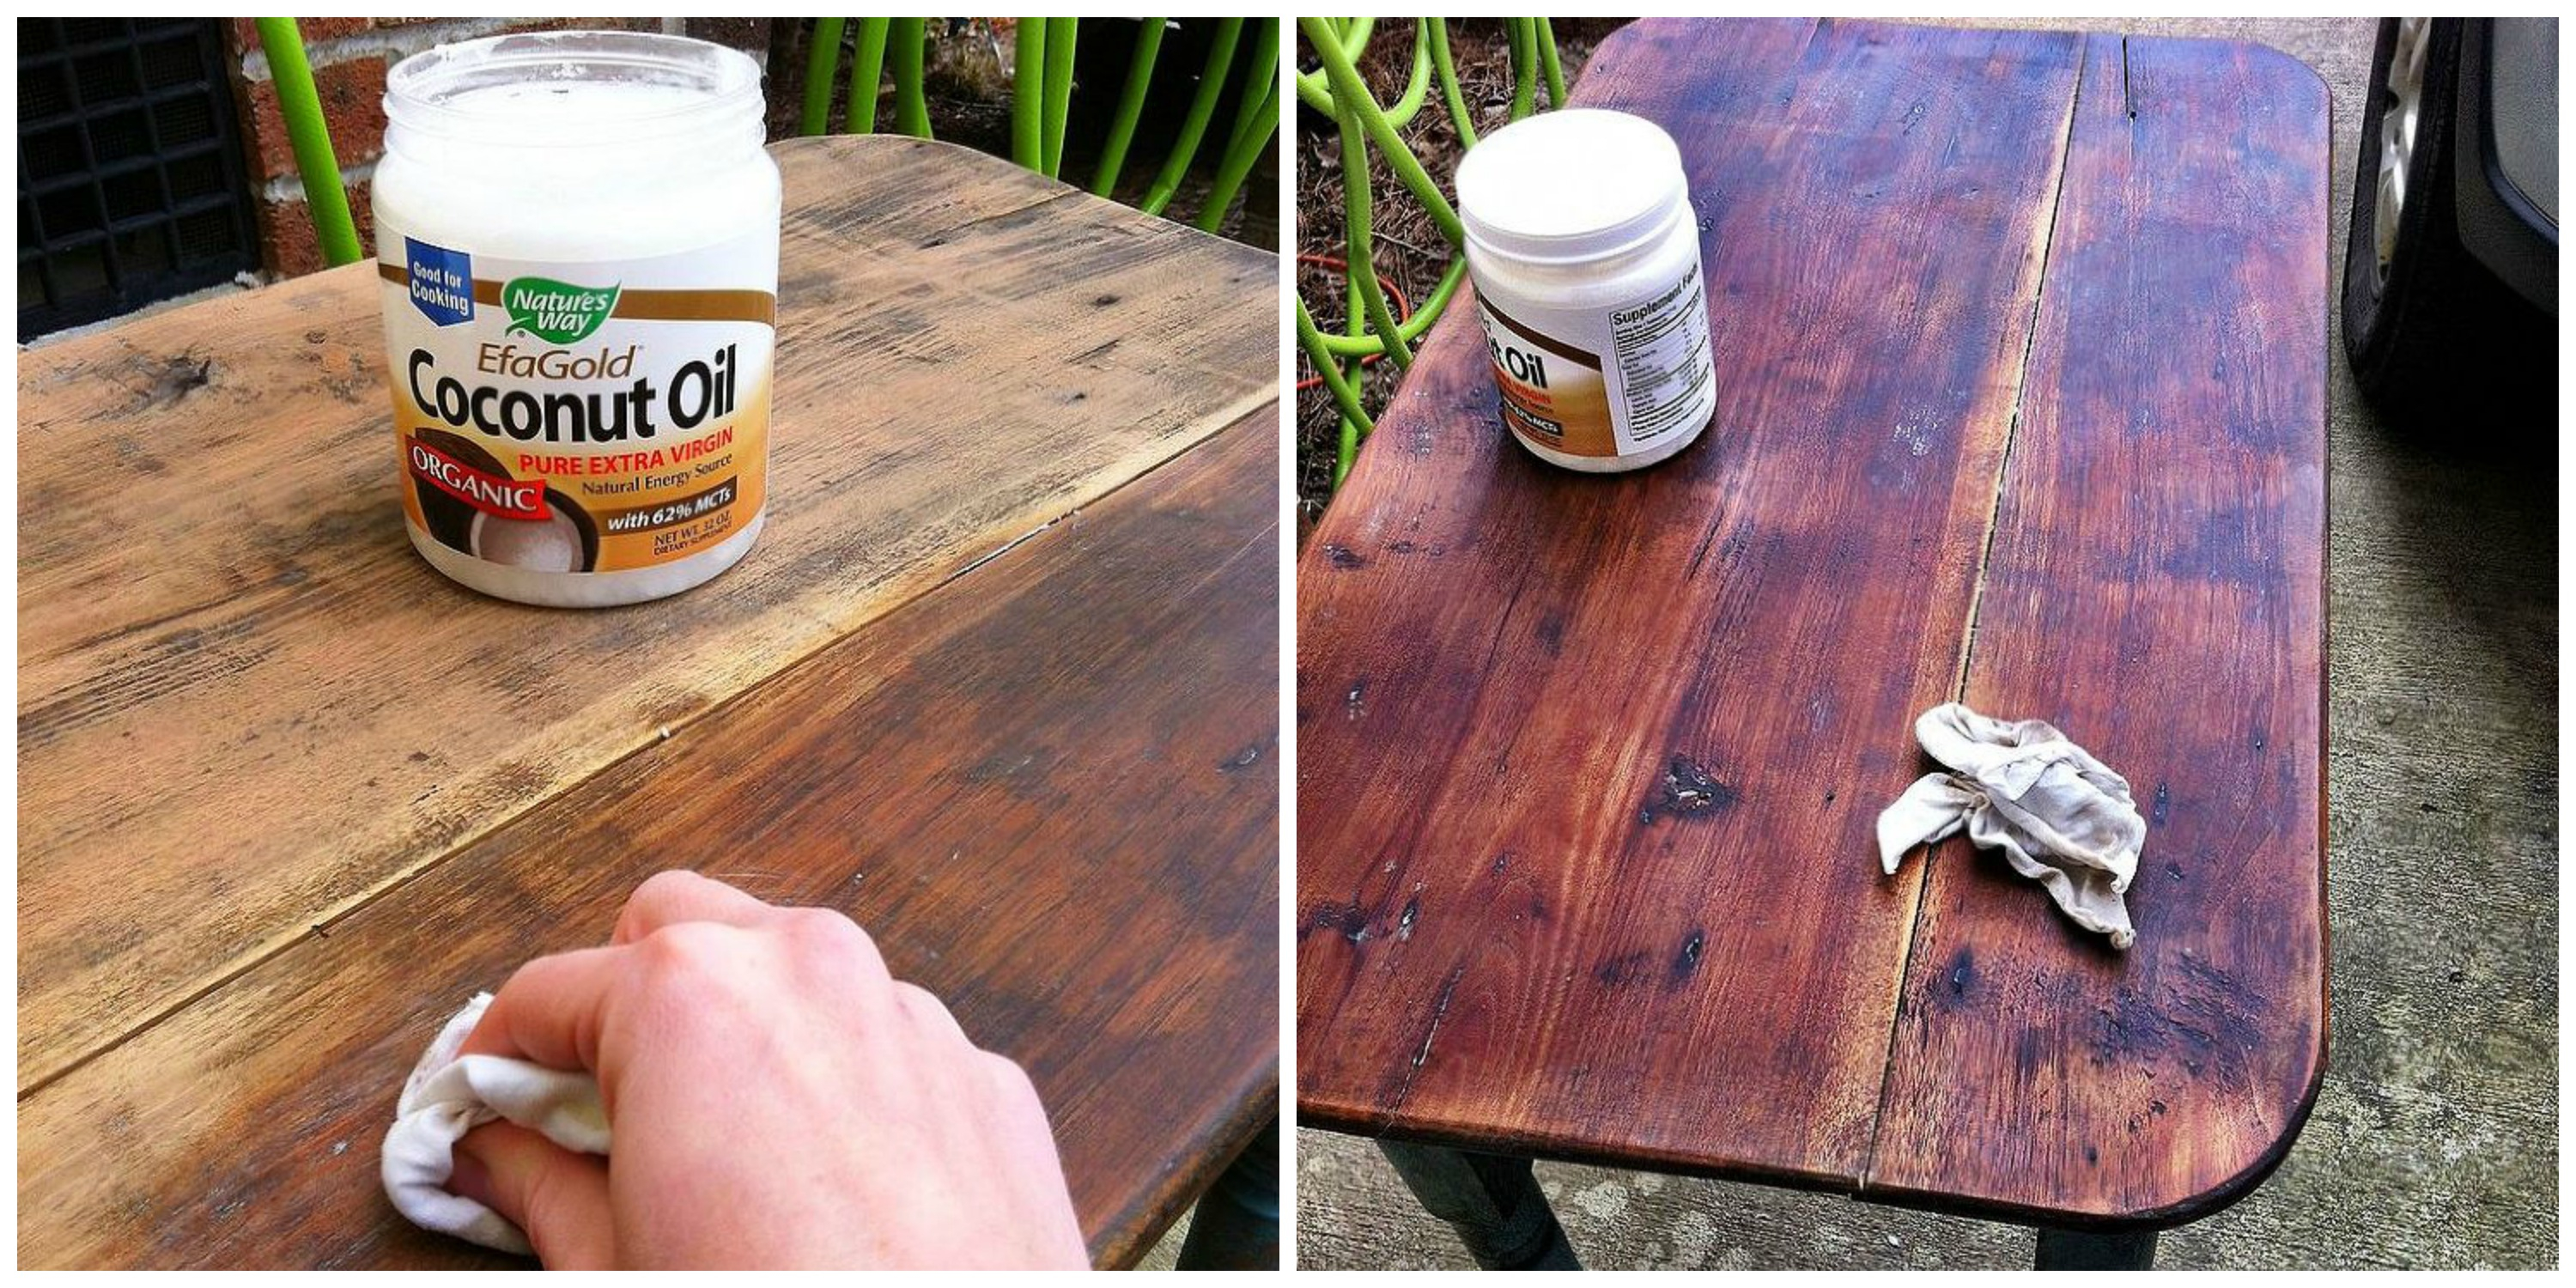 8 Tricks For Repairing And Restoring Wood Damage | Huffpost Life throughout How To Restore Wood Furniture With Vinegar